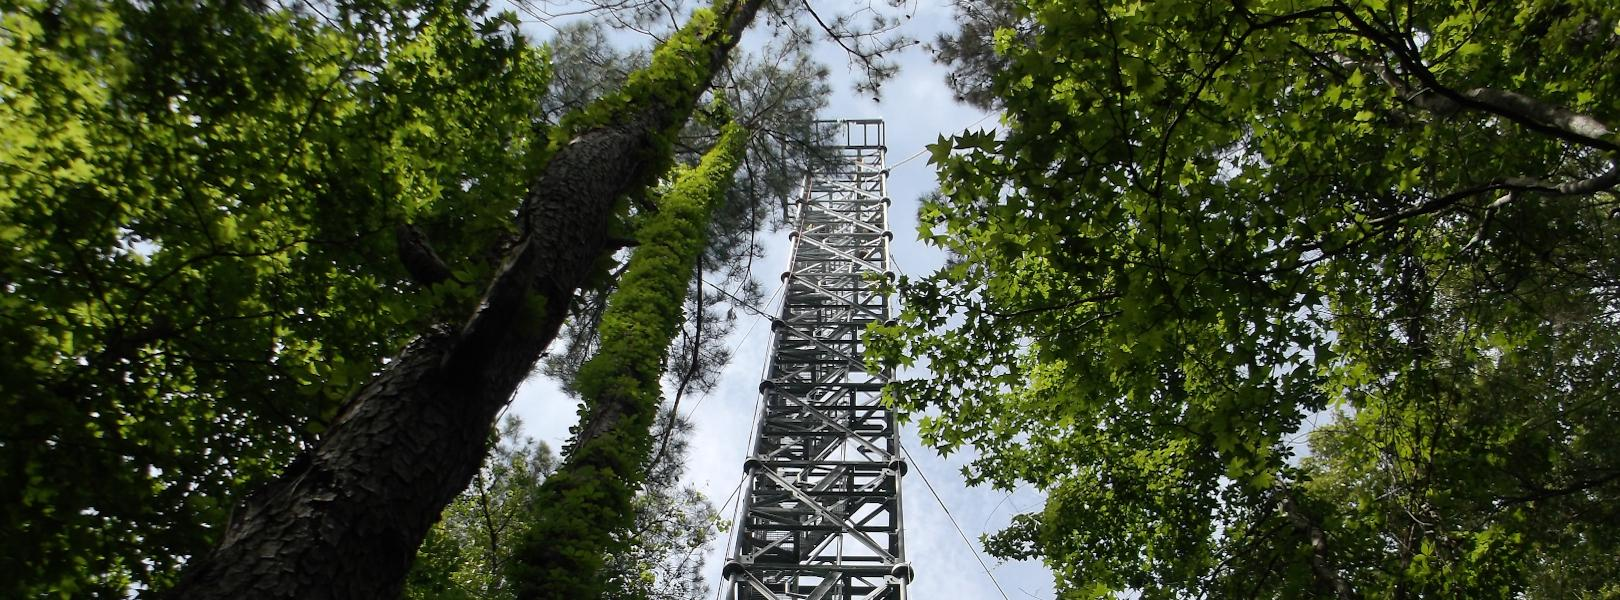 LENO tower from bottom looking toward top of forest canopy